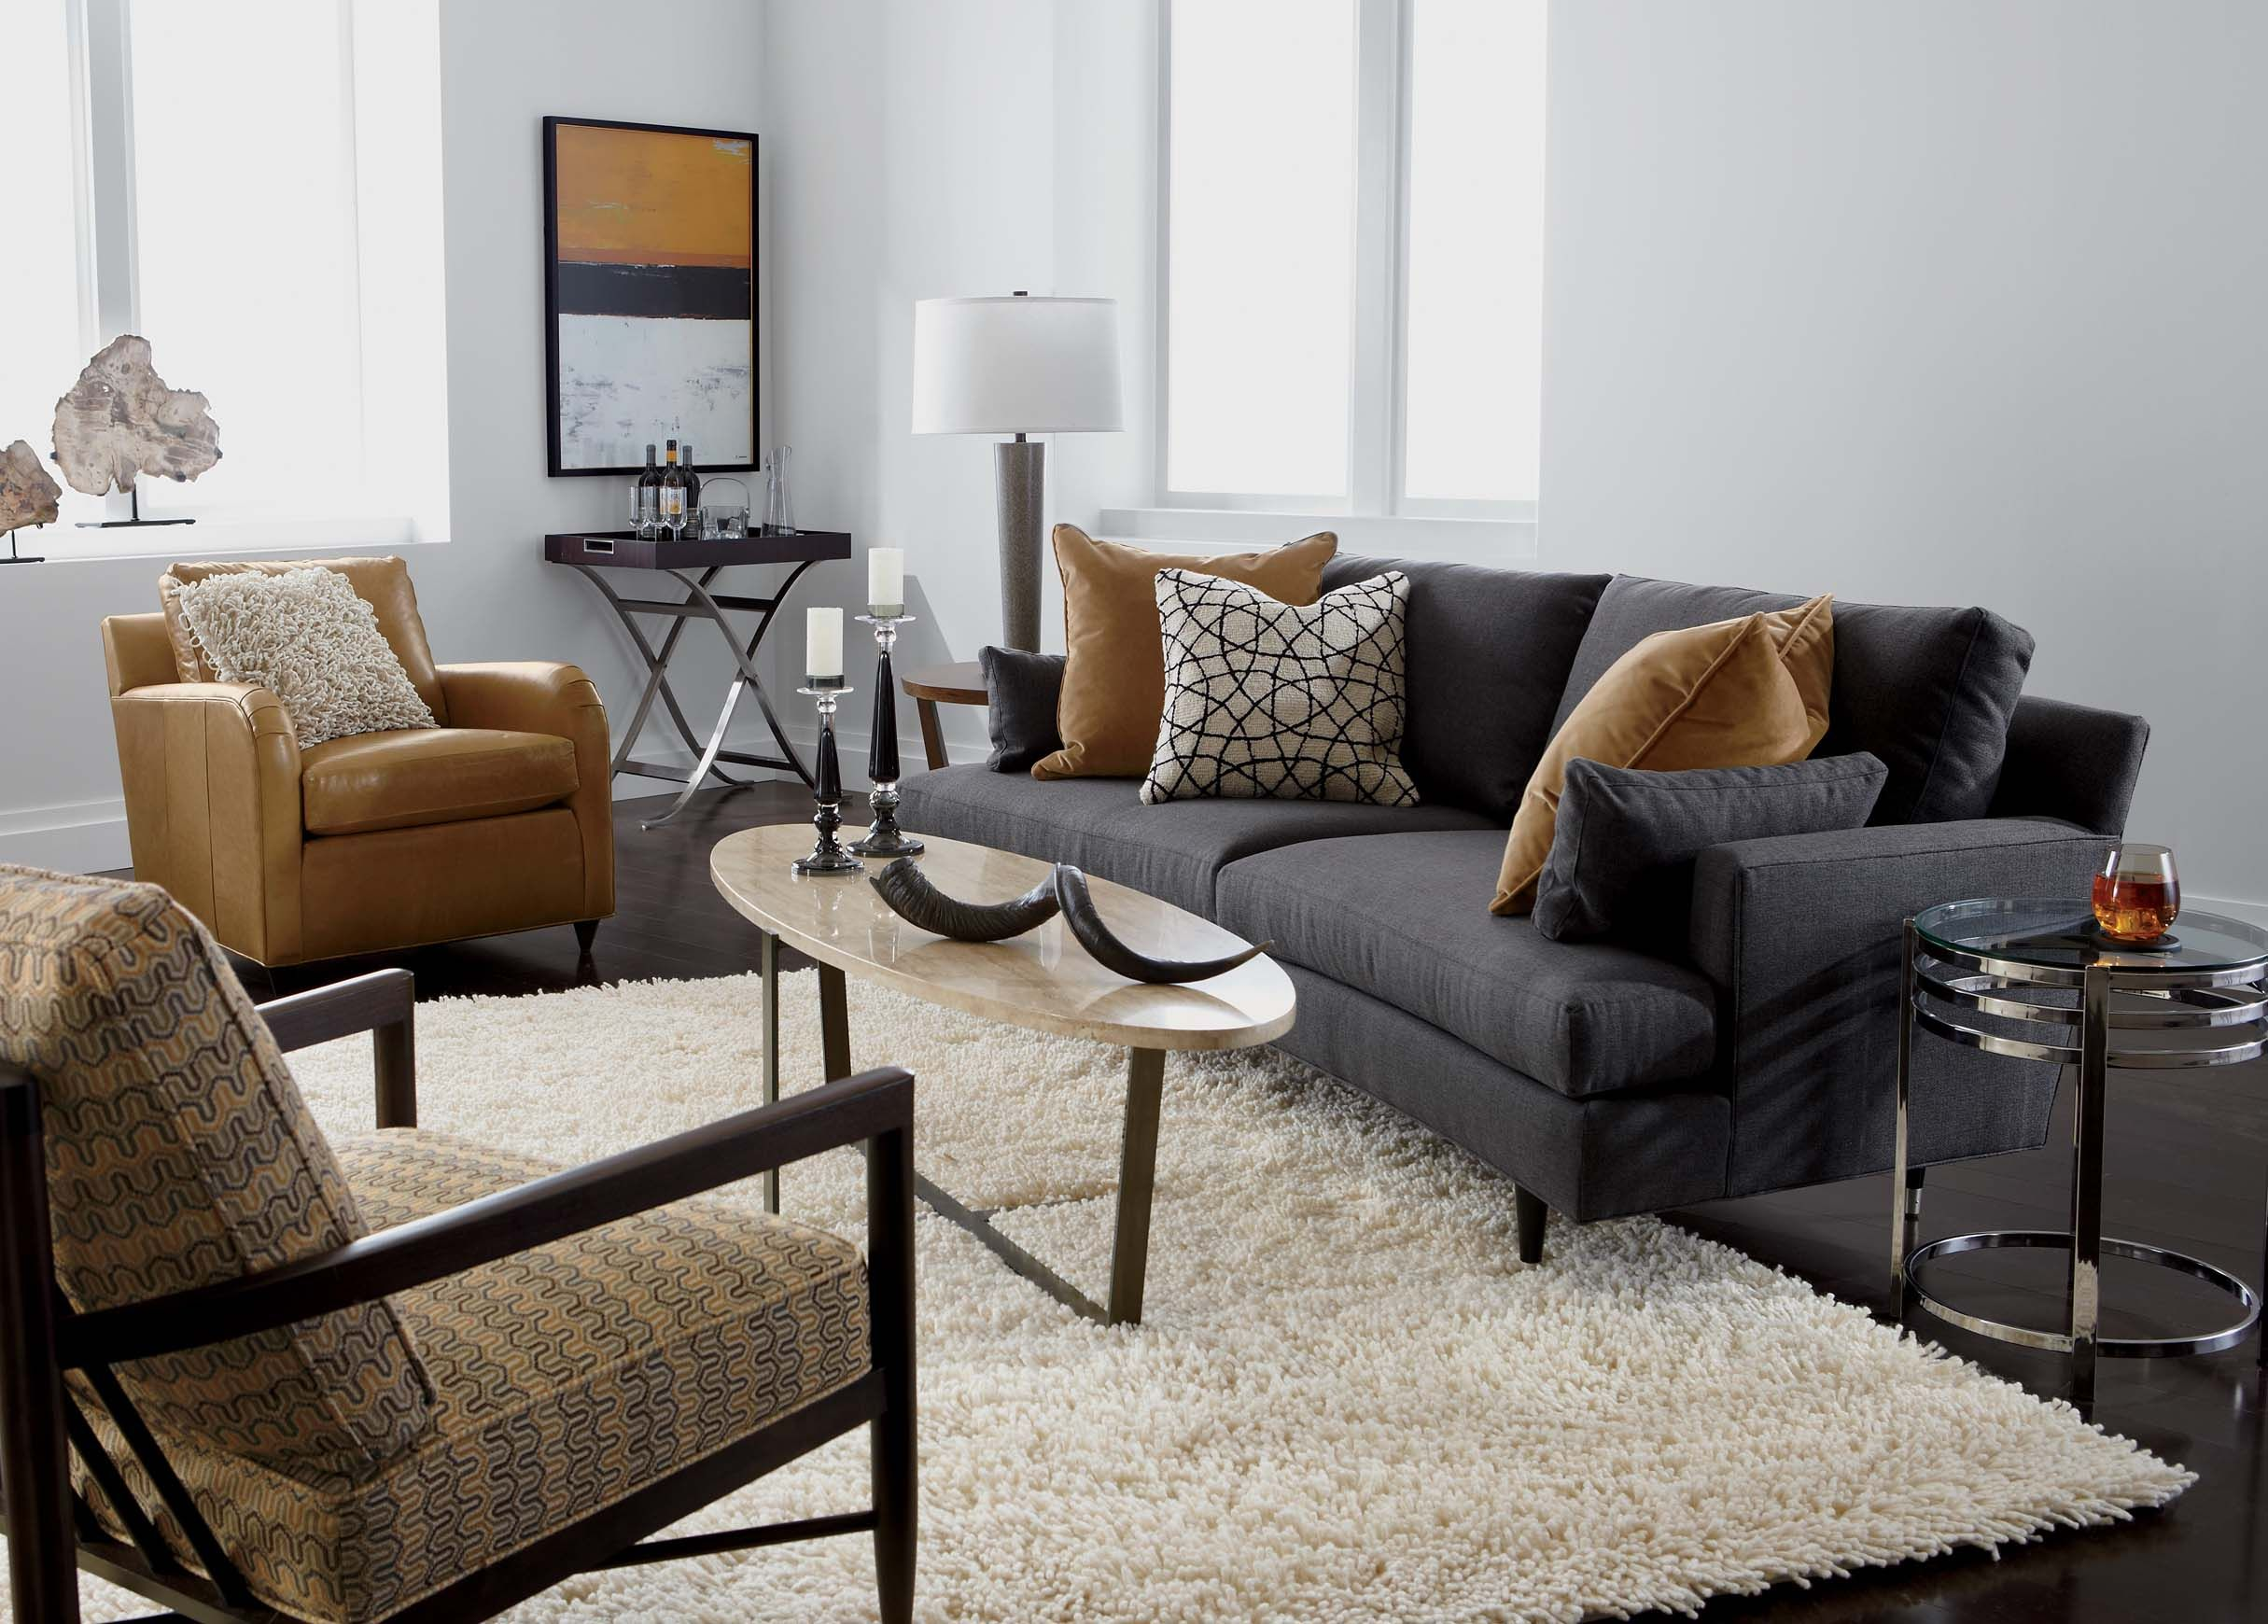 Apollo Living Room | Ethan Allen